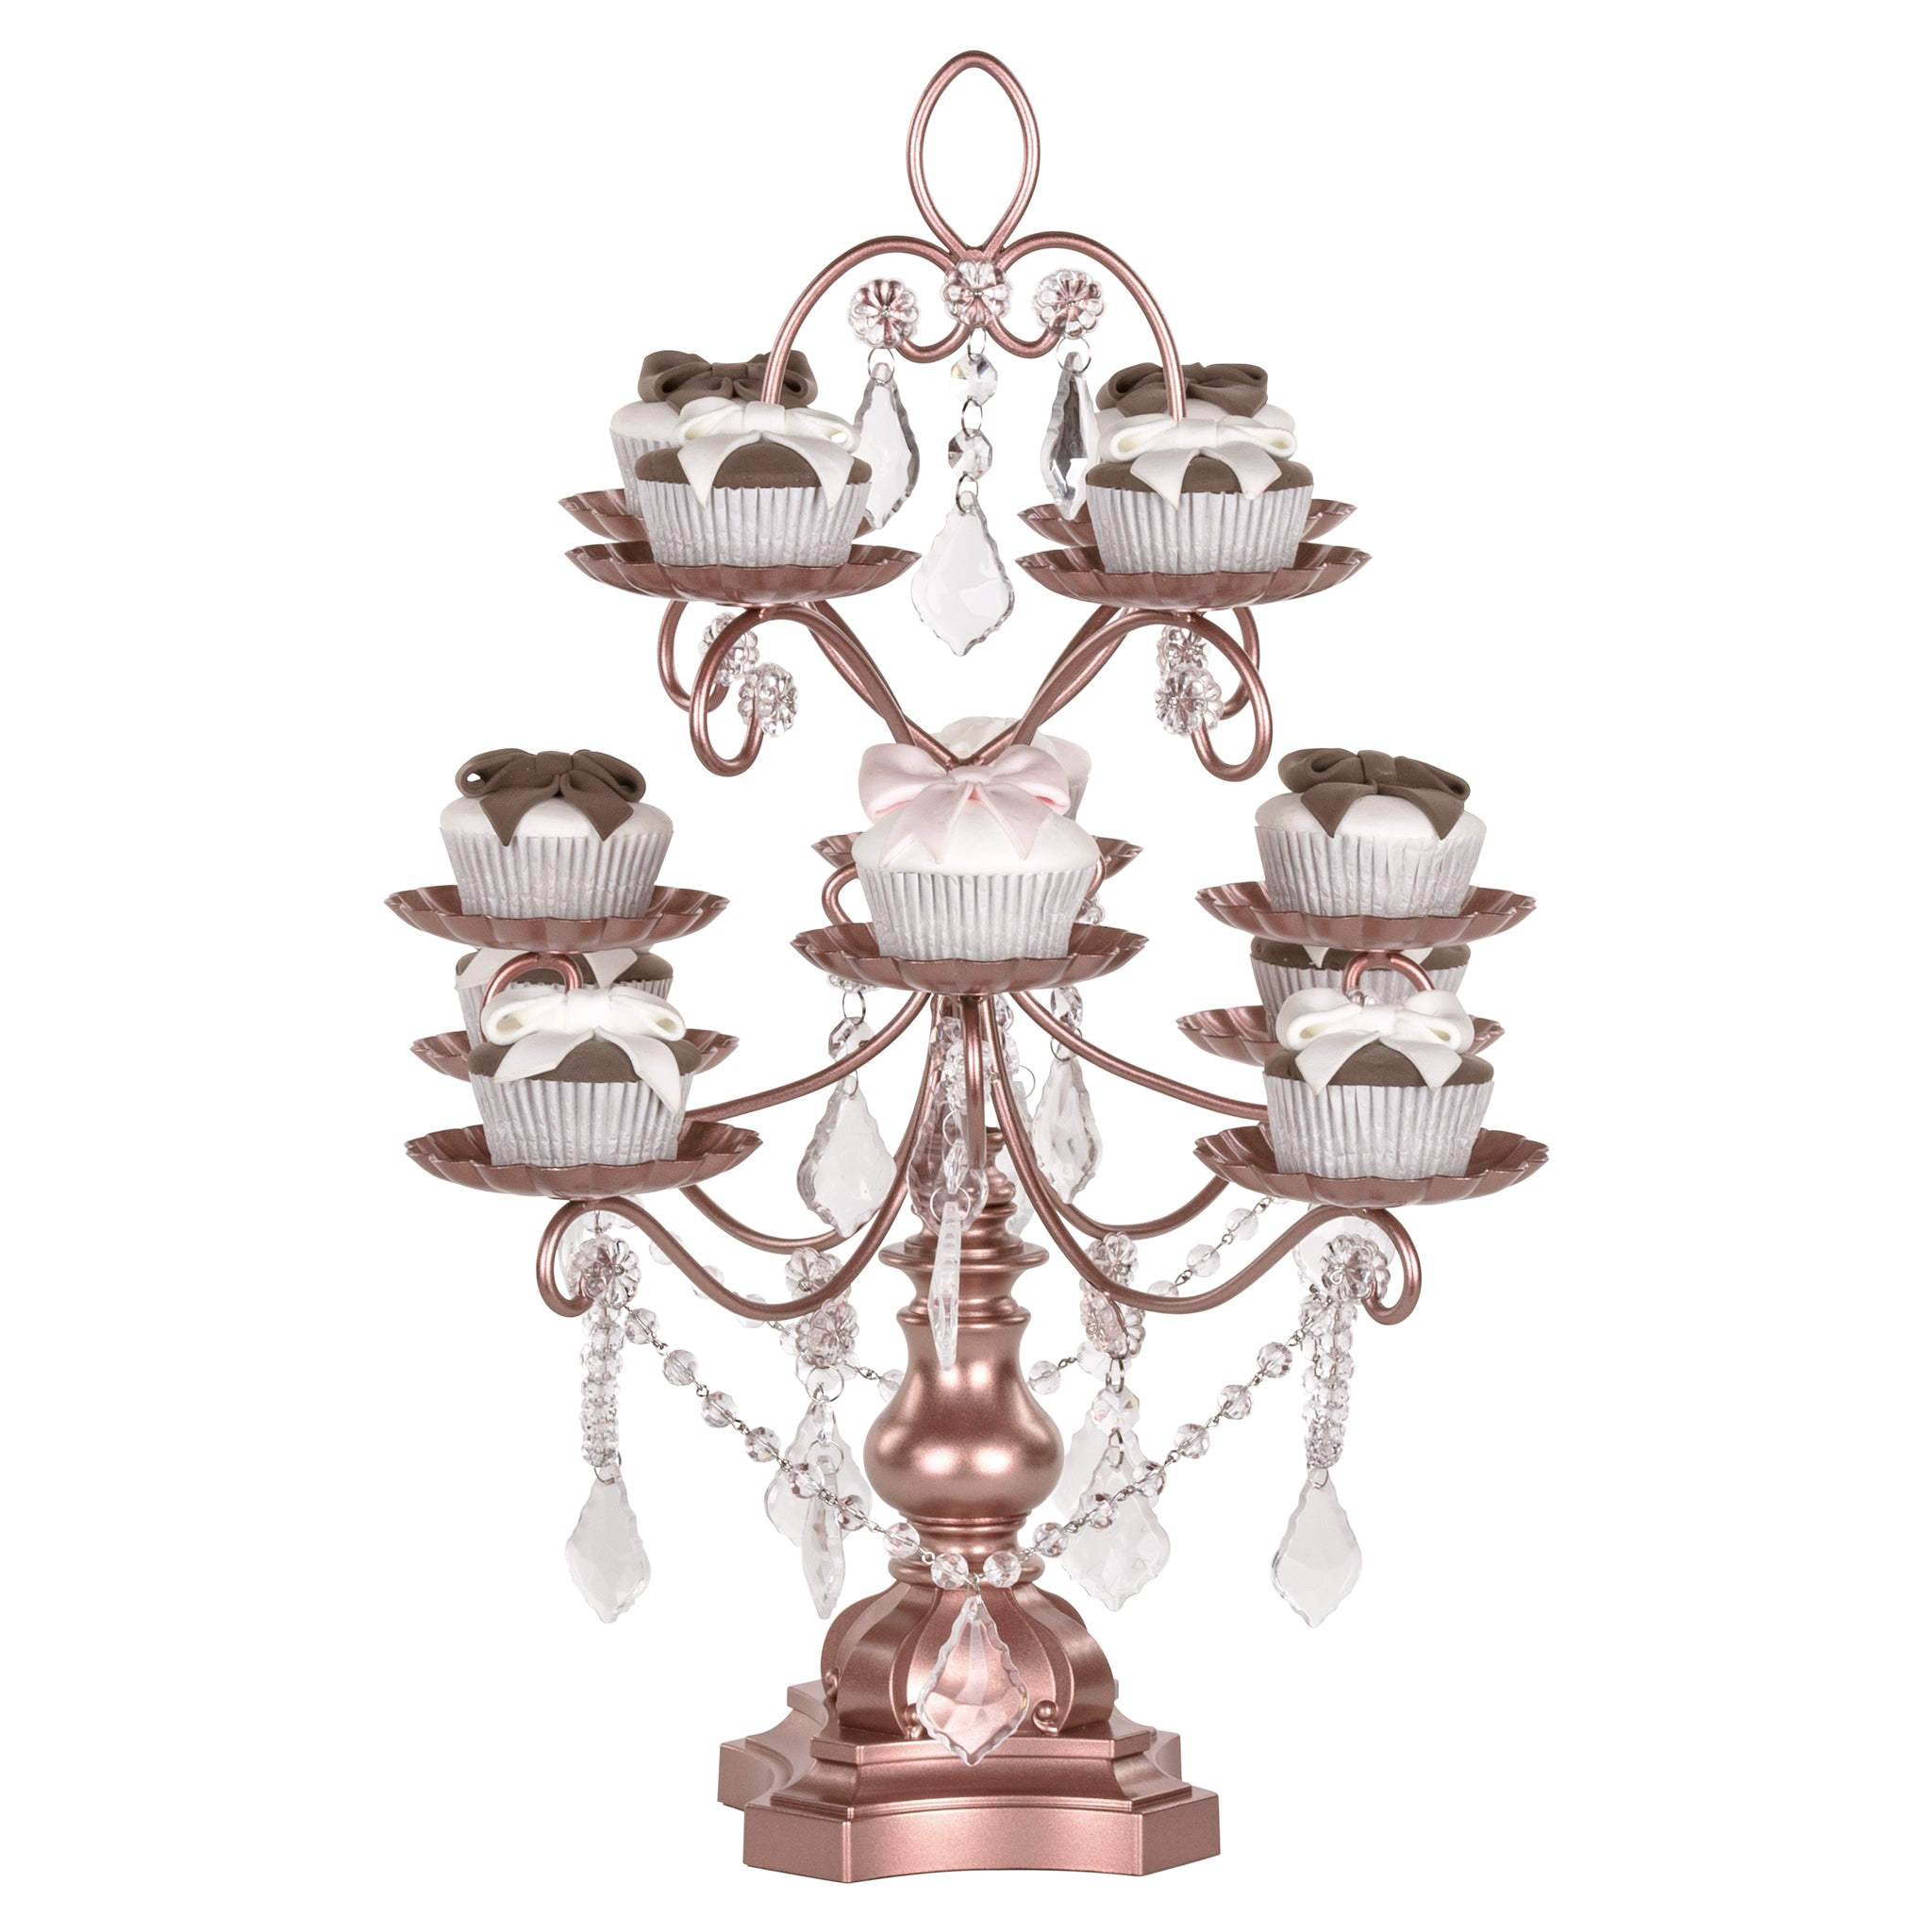 Amalfi Decor 12-Piece Vintage Crystal-Draped Cupcake Stand (Rose Gold) | Stainless Steel Frame